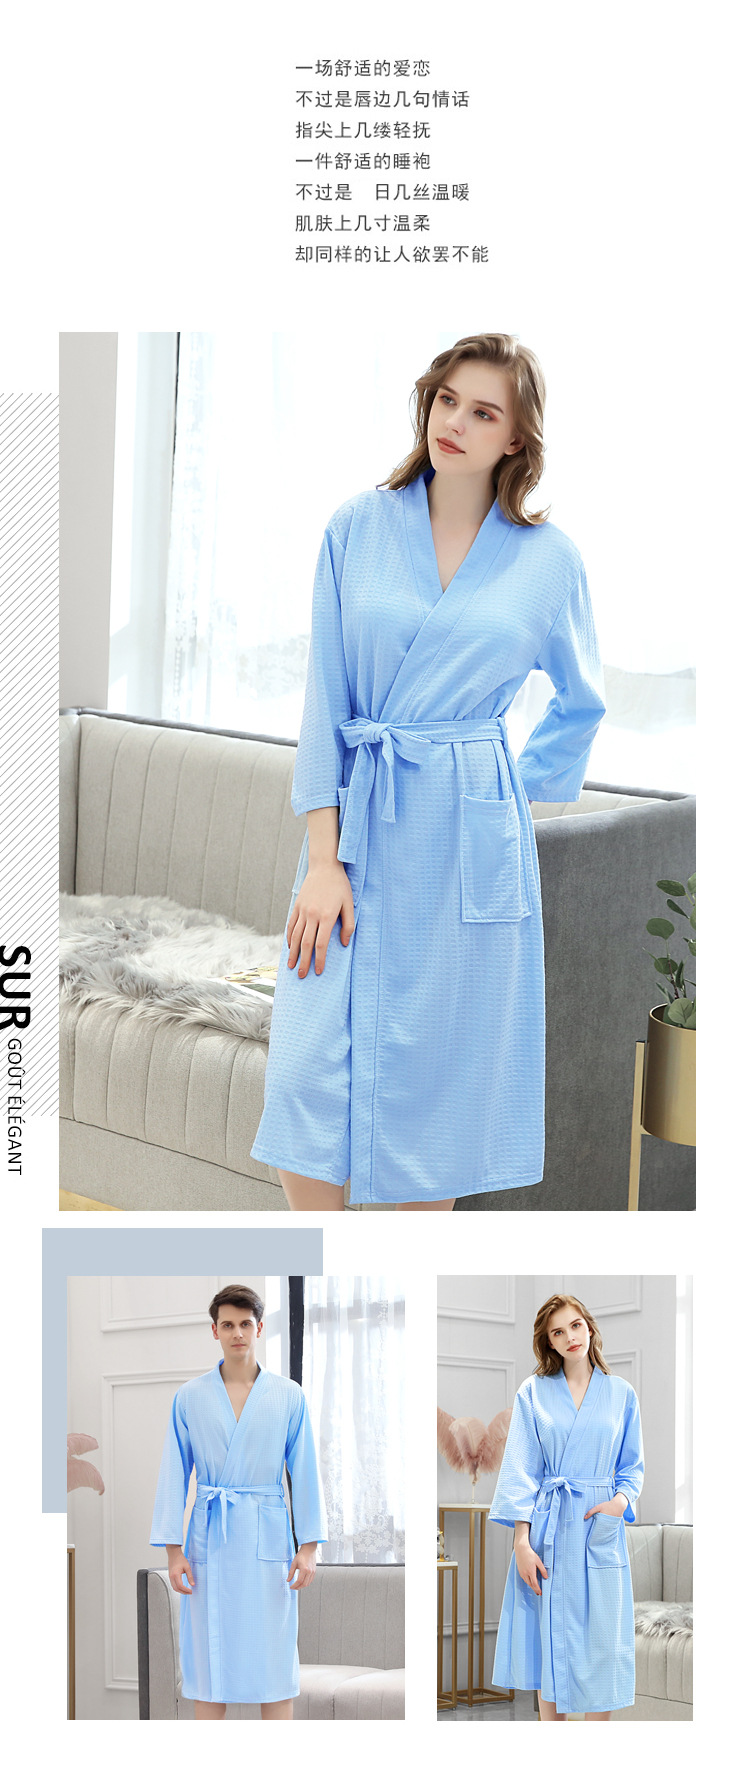 Spring Autumn Unisex Waufg Bathrobe Women's Thin Bathrobe Suction Water Fast Dry Pajamas Lovers's Home Gown Pink Sleeping Robe